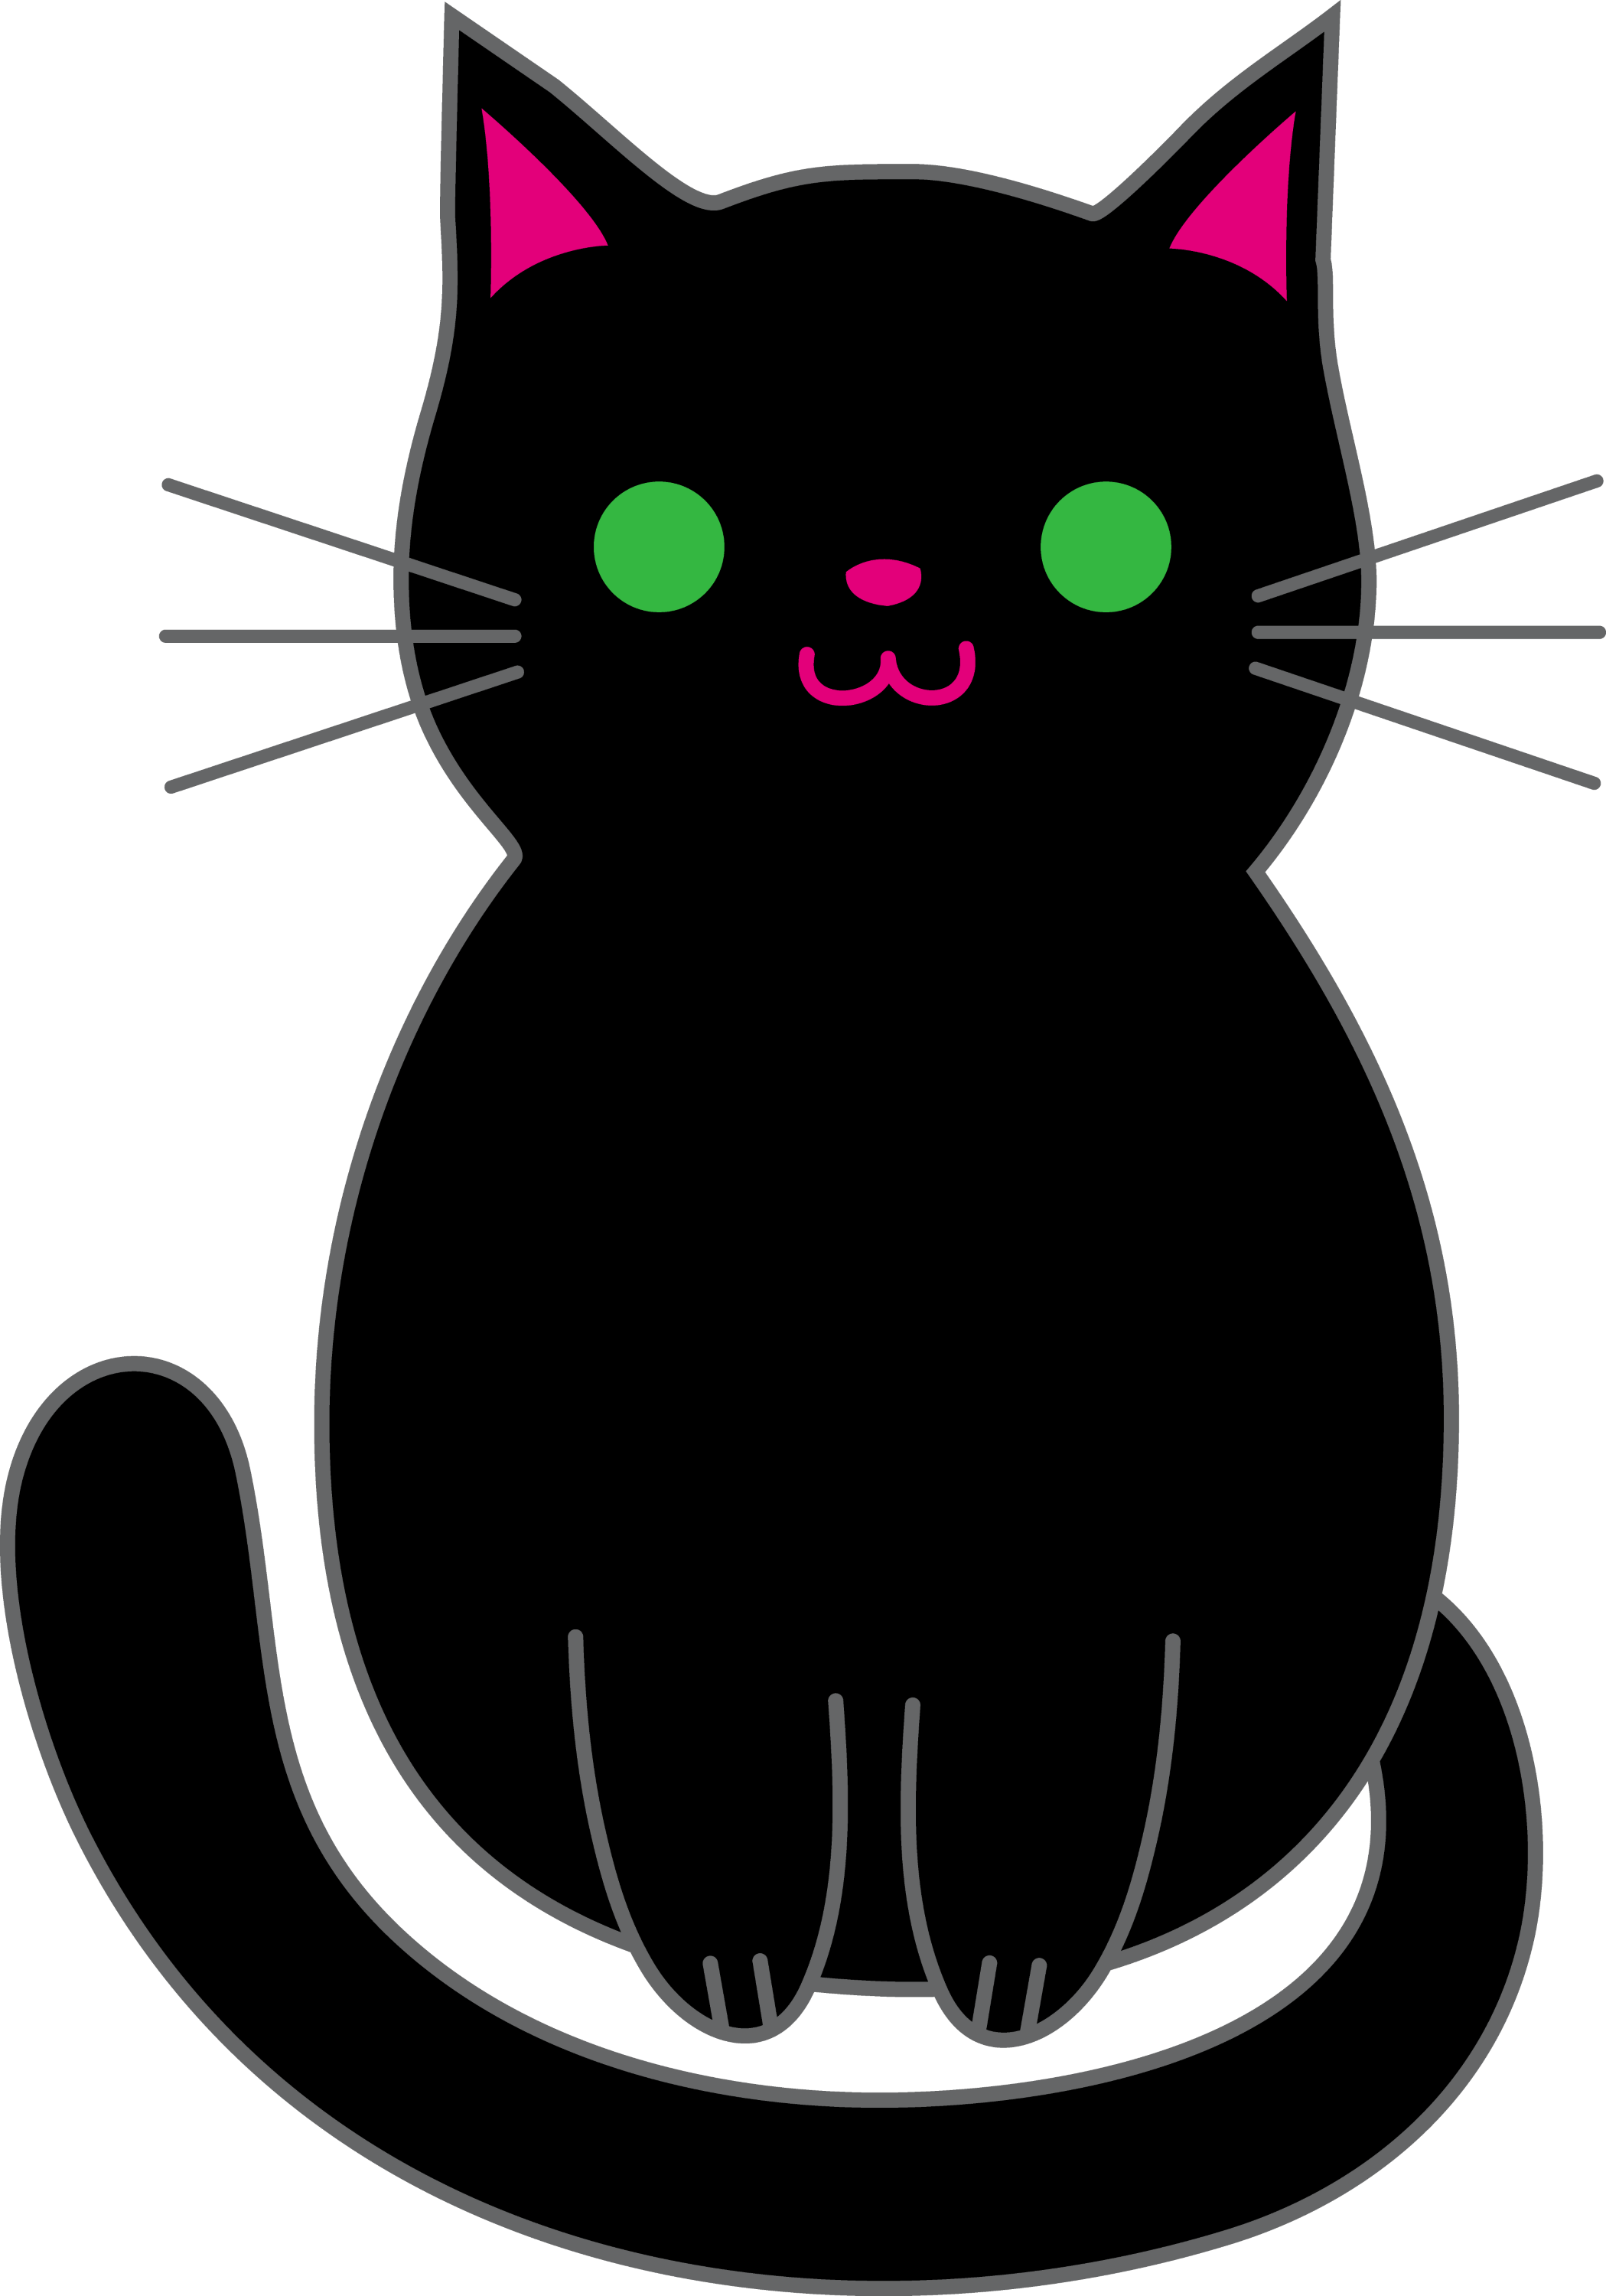 Cute Black Kitten - Free Clip Art